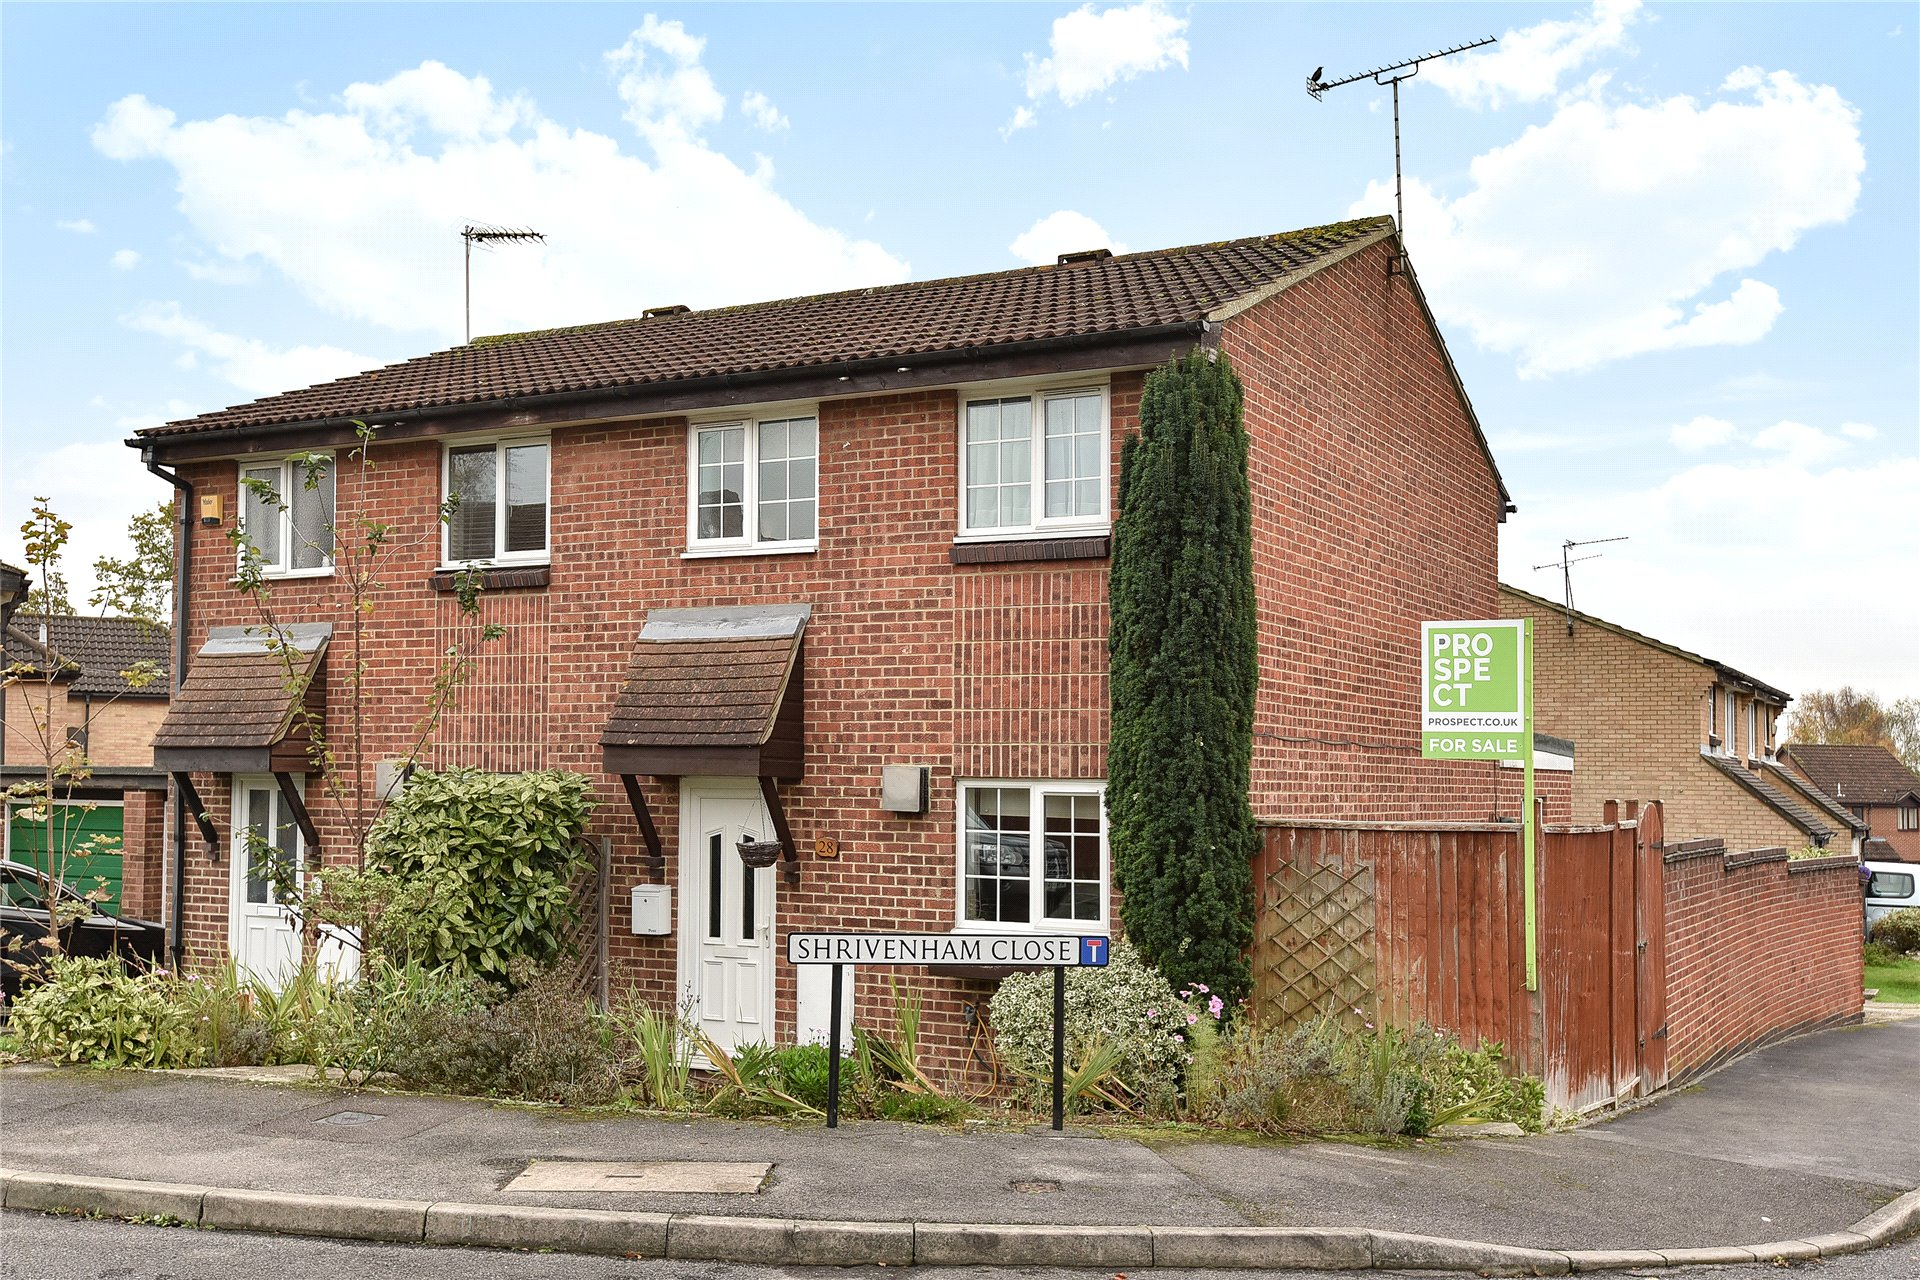 3 Bedrooms Semi Detached House for sale in Shrivenham Close, College Town, Sandhurst, Berkshire, GU47